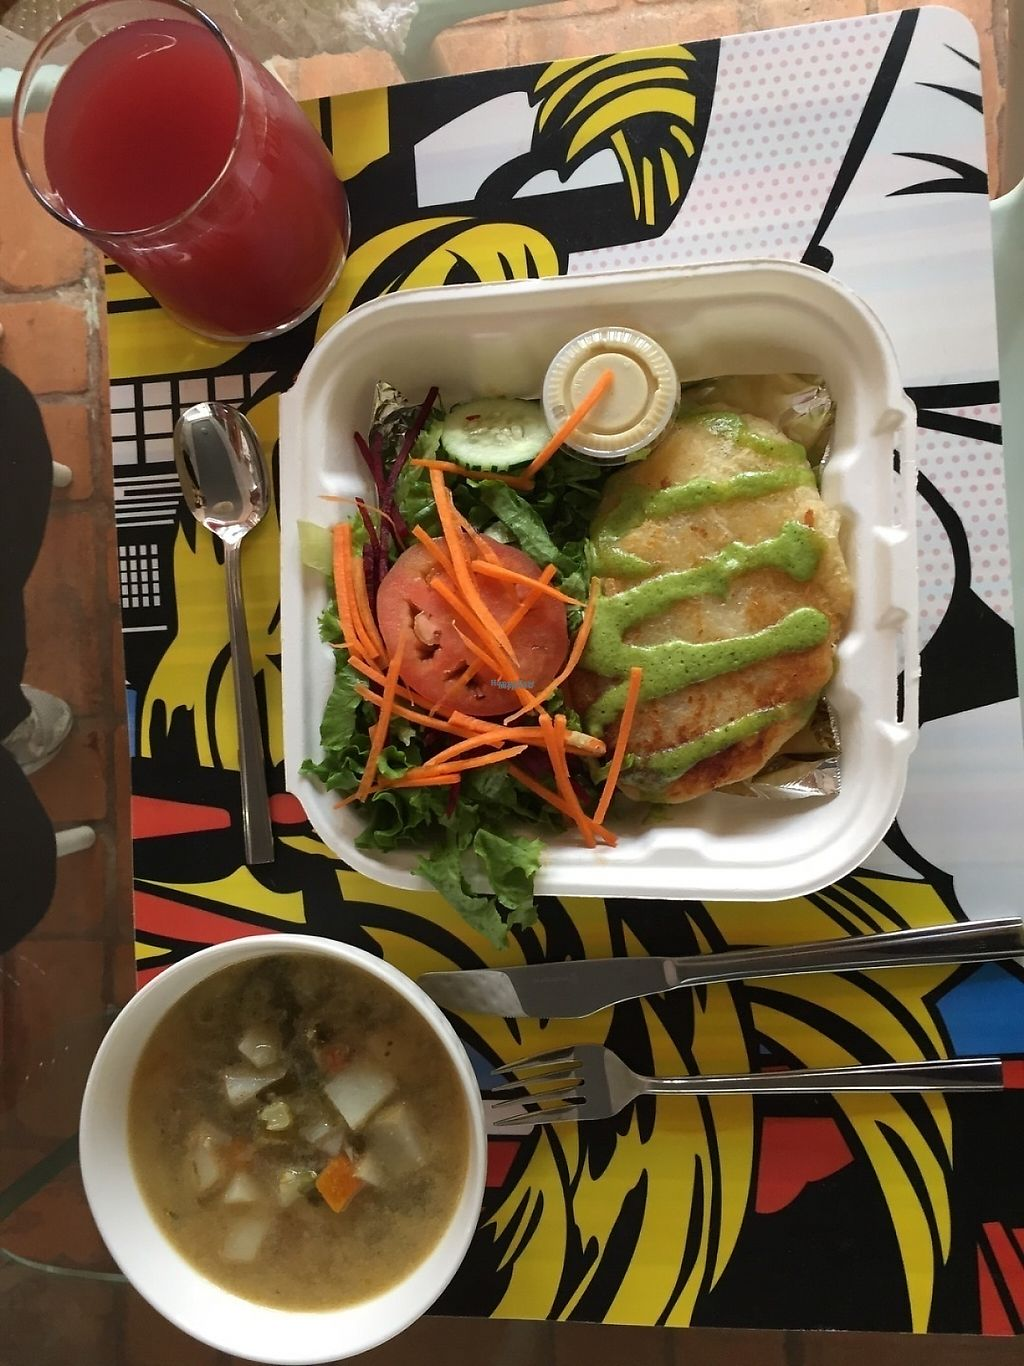 """Photo of Mantras Veggie Cafe and Tea House  by <a href=""""/members/profile/Longina"""">Longina</a> <br/>Daily special - vegetable soup, enyucado and cas/rosa de jamaica drink with side salad with cas dressing. Ordered for take out. Delicious <br/> January 15, 2017  - <a href='/contact/abuse/image/18650/212248'>Report</a>"""